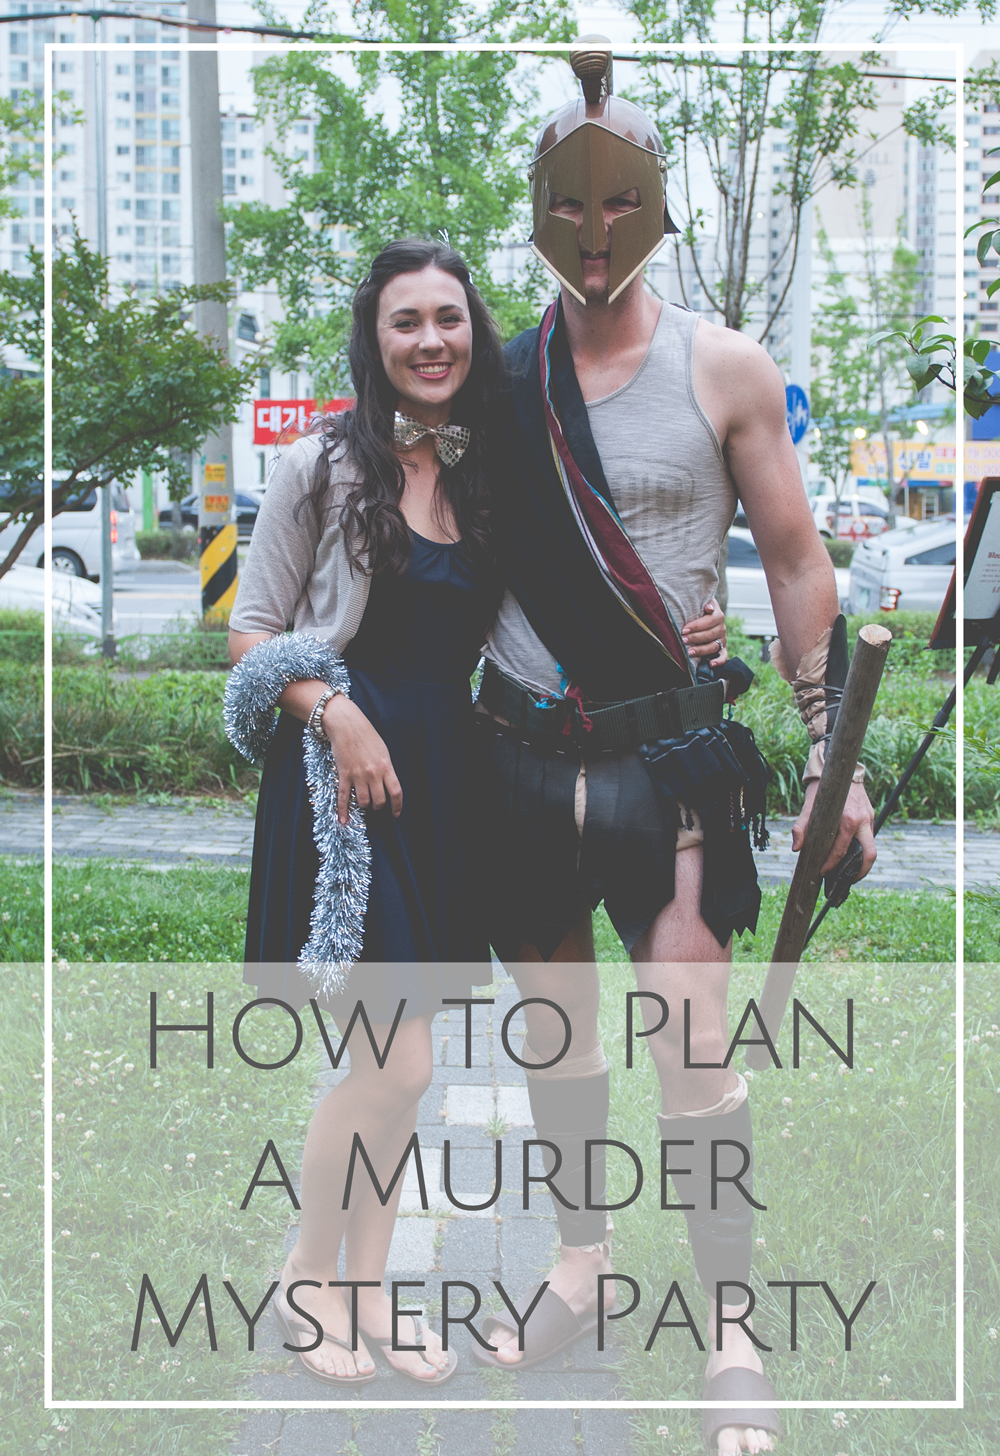 How to plan murder mystery party